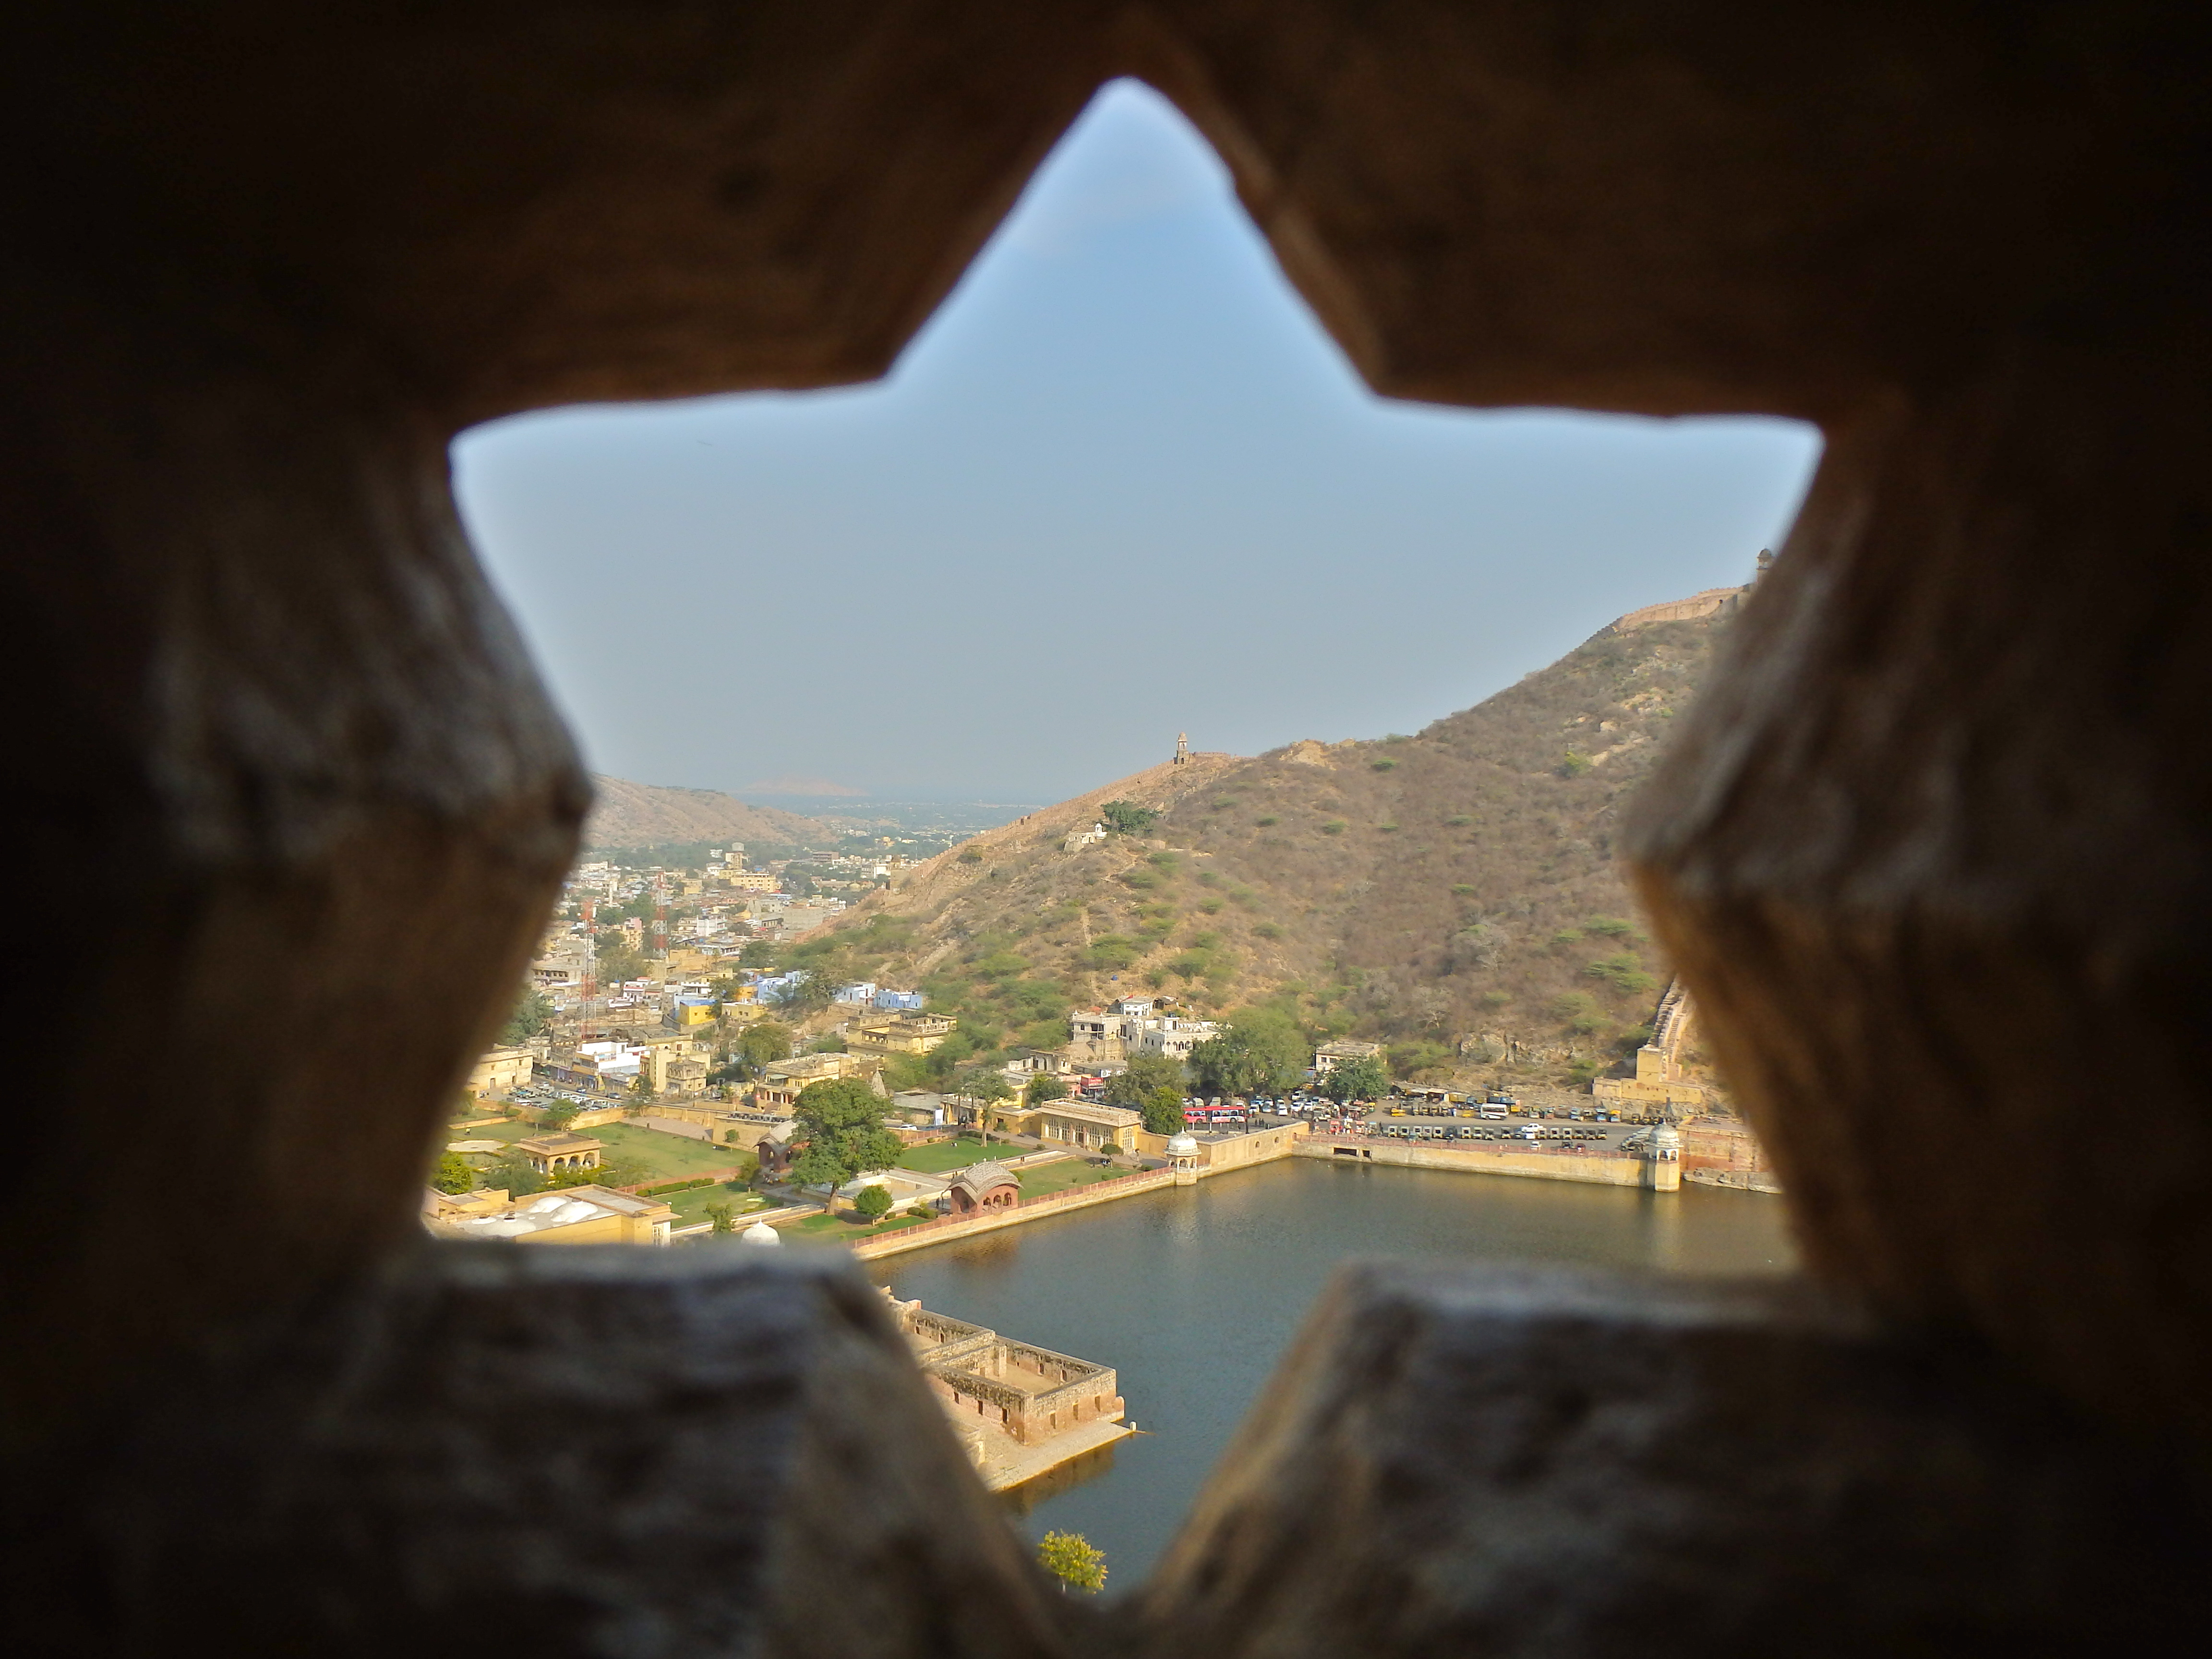 View from the Amber Fort, Jaipur, India what to see in jaipur in one day how to visit the amber fort in jaipur is jaipur safe for women travellers?